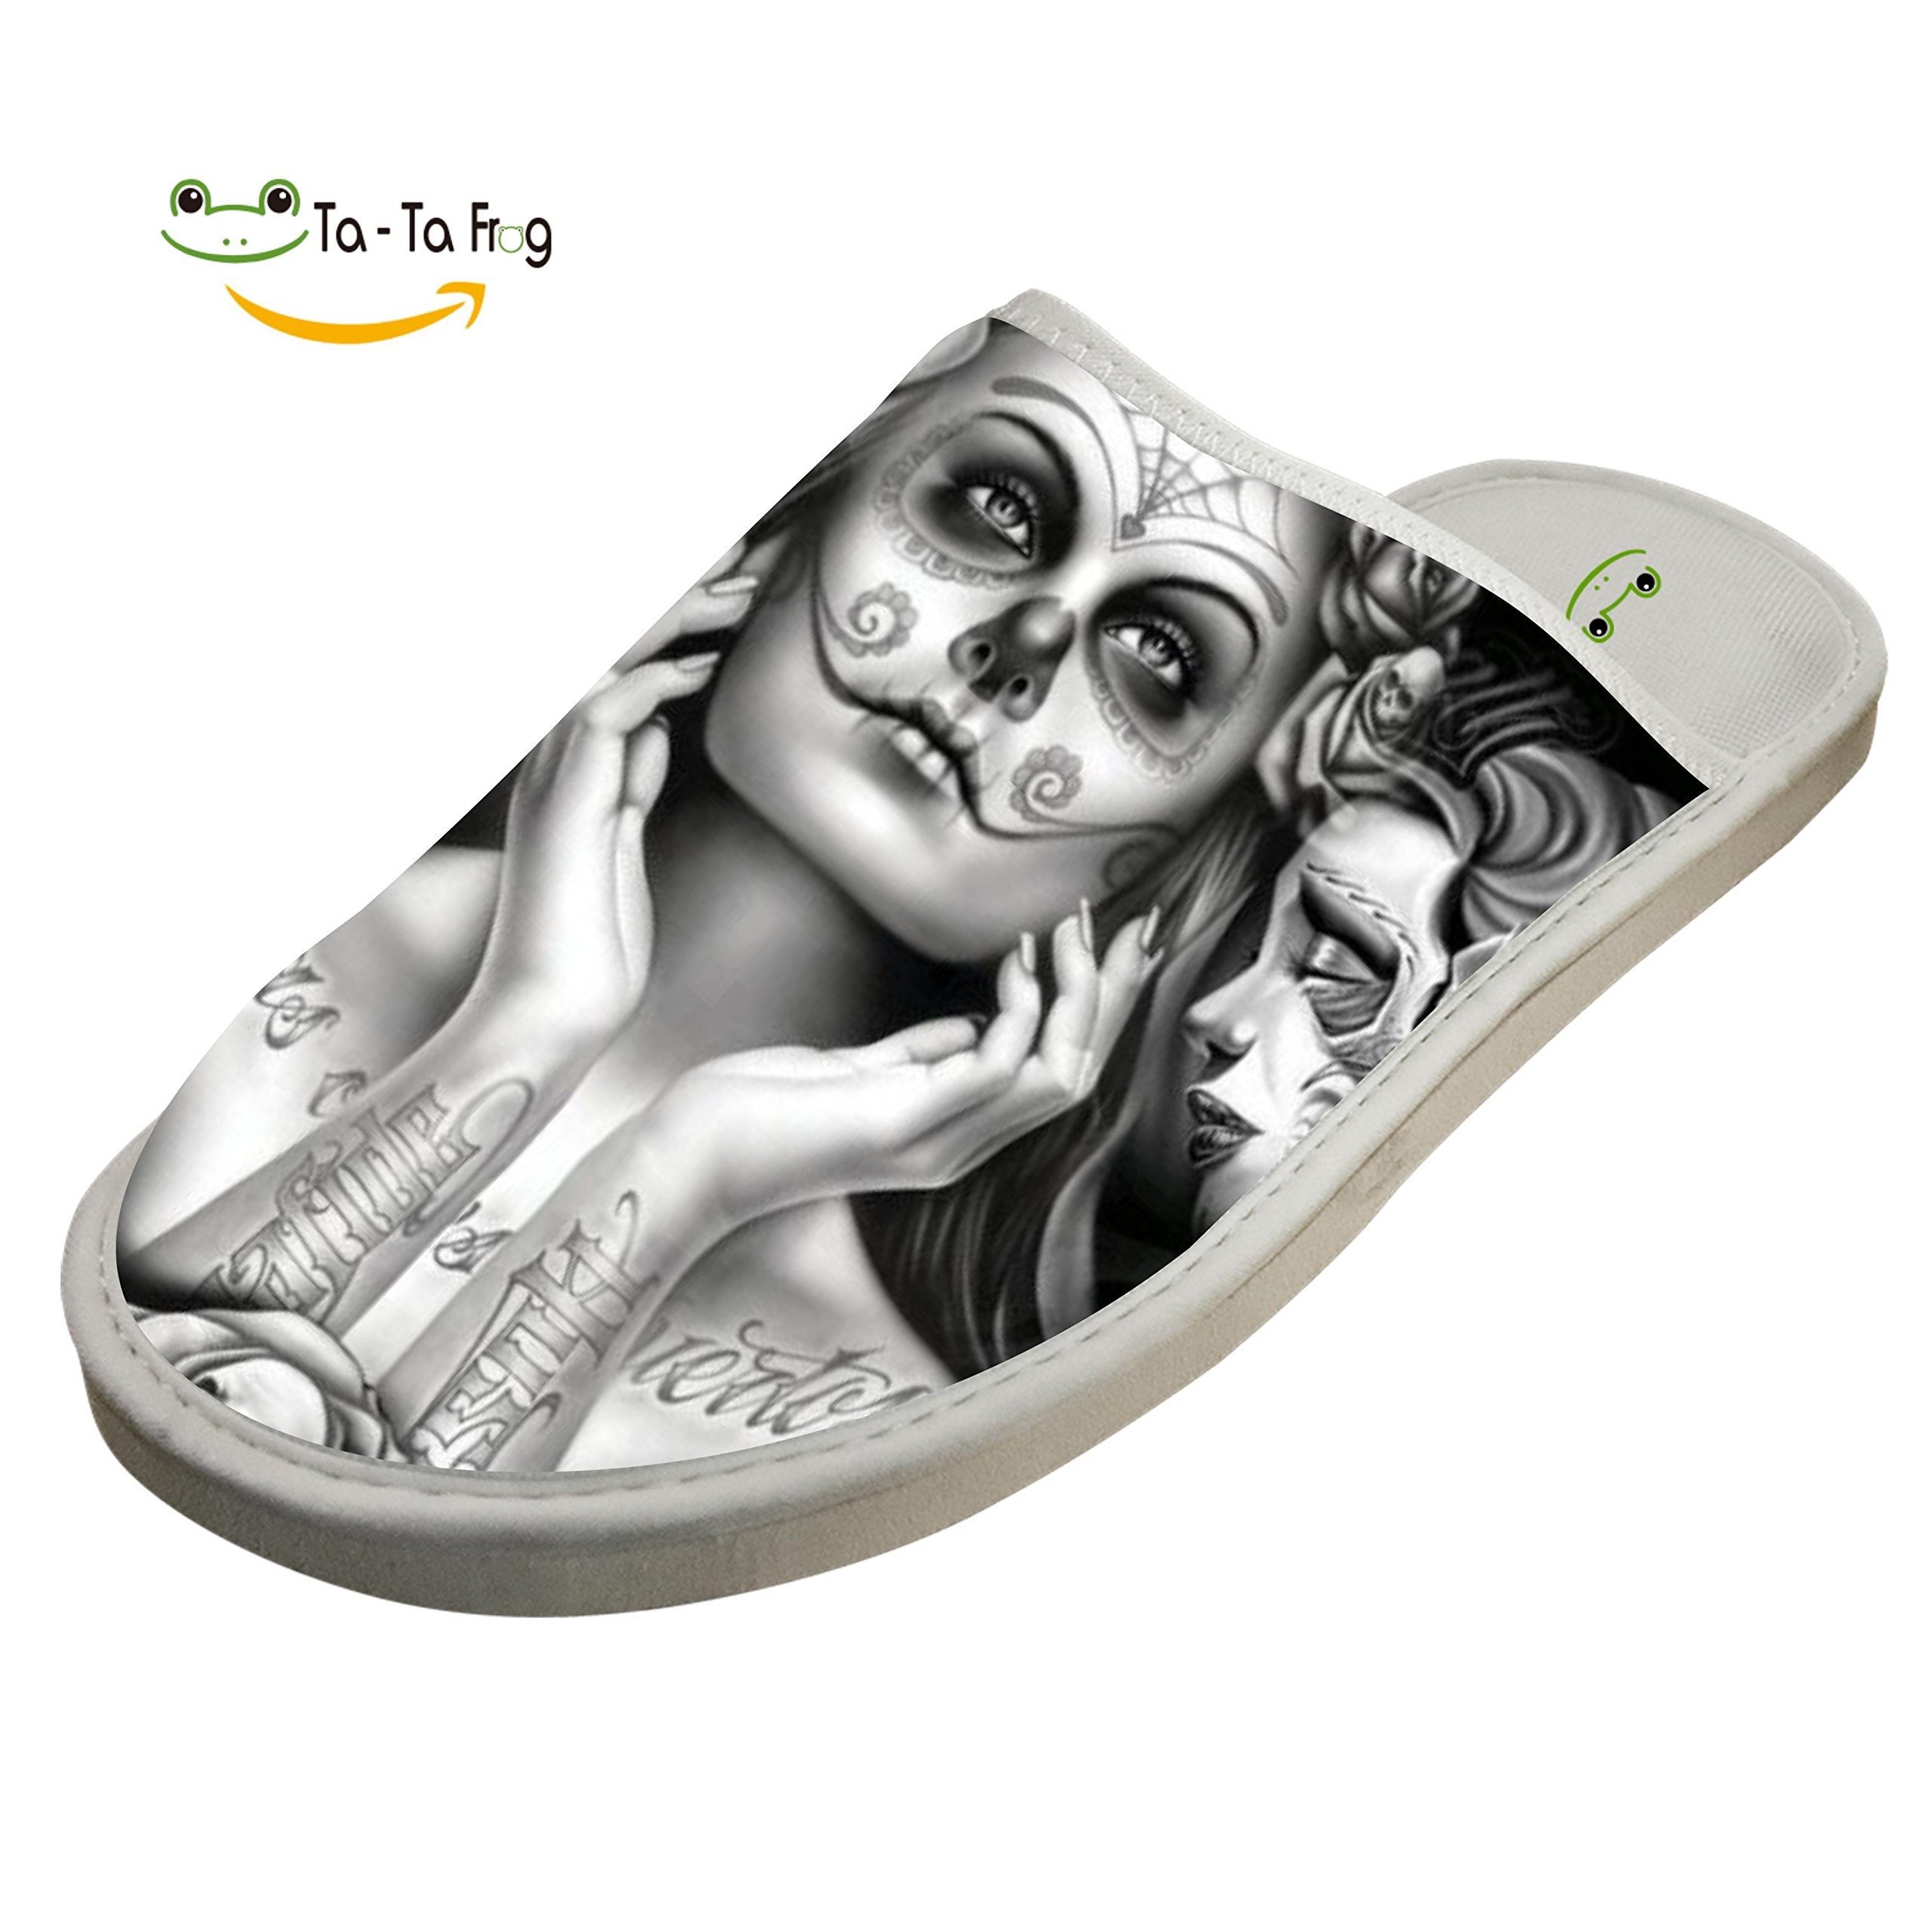 Slippers with Sugar Skull Girl 3D Print Indoor Sandals Adults Shoes Flat House Flip Flops 9